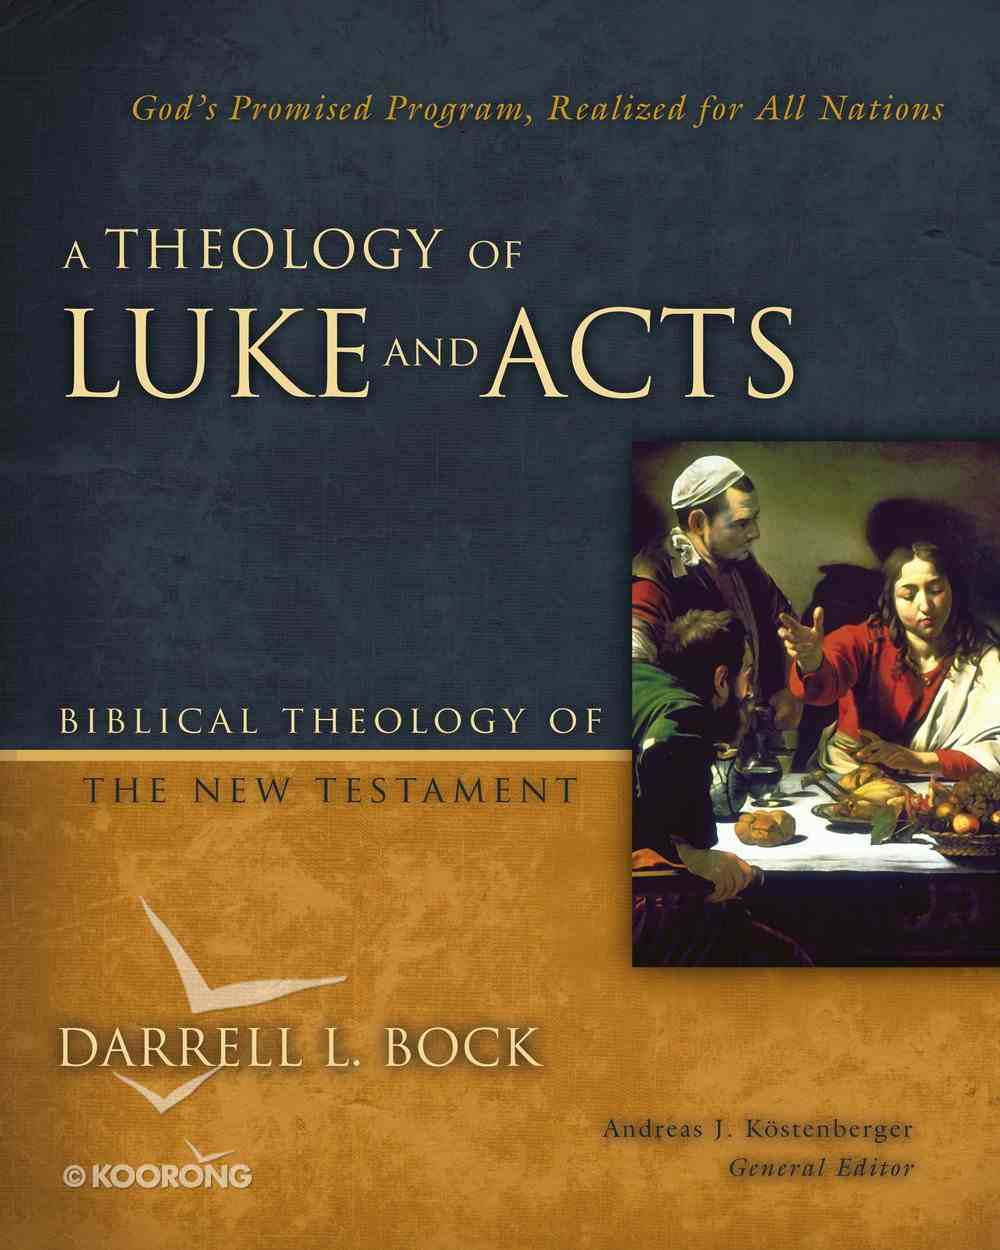 A Theology of Luke and Acts (Biblical Theology Of The New Testament Series) eBook